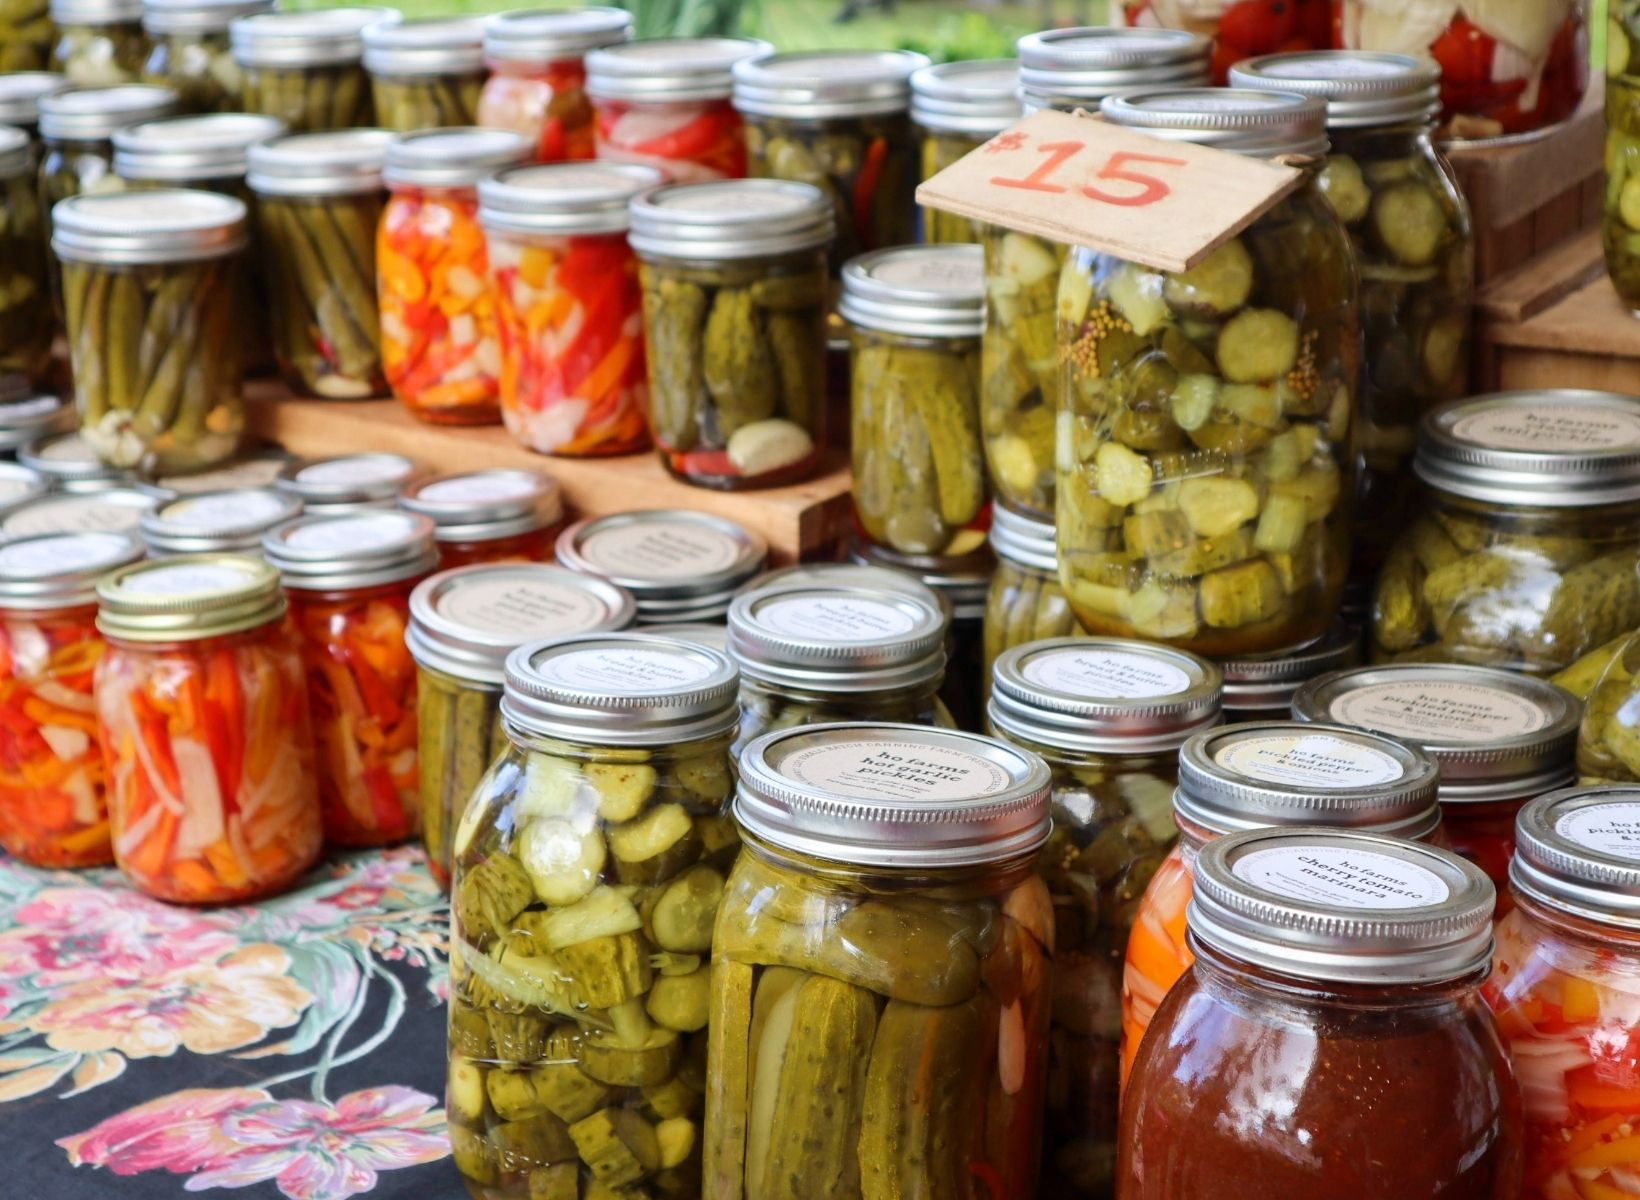 Numerous mason jars with probiotic-rich fermented foods, including pickles and vegetables.